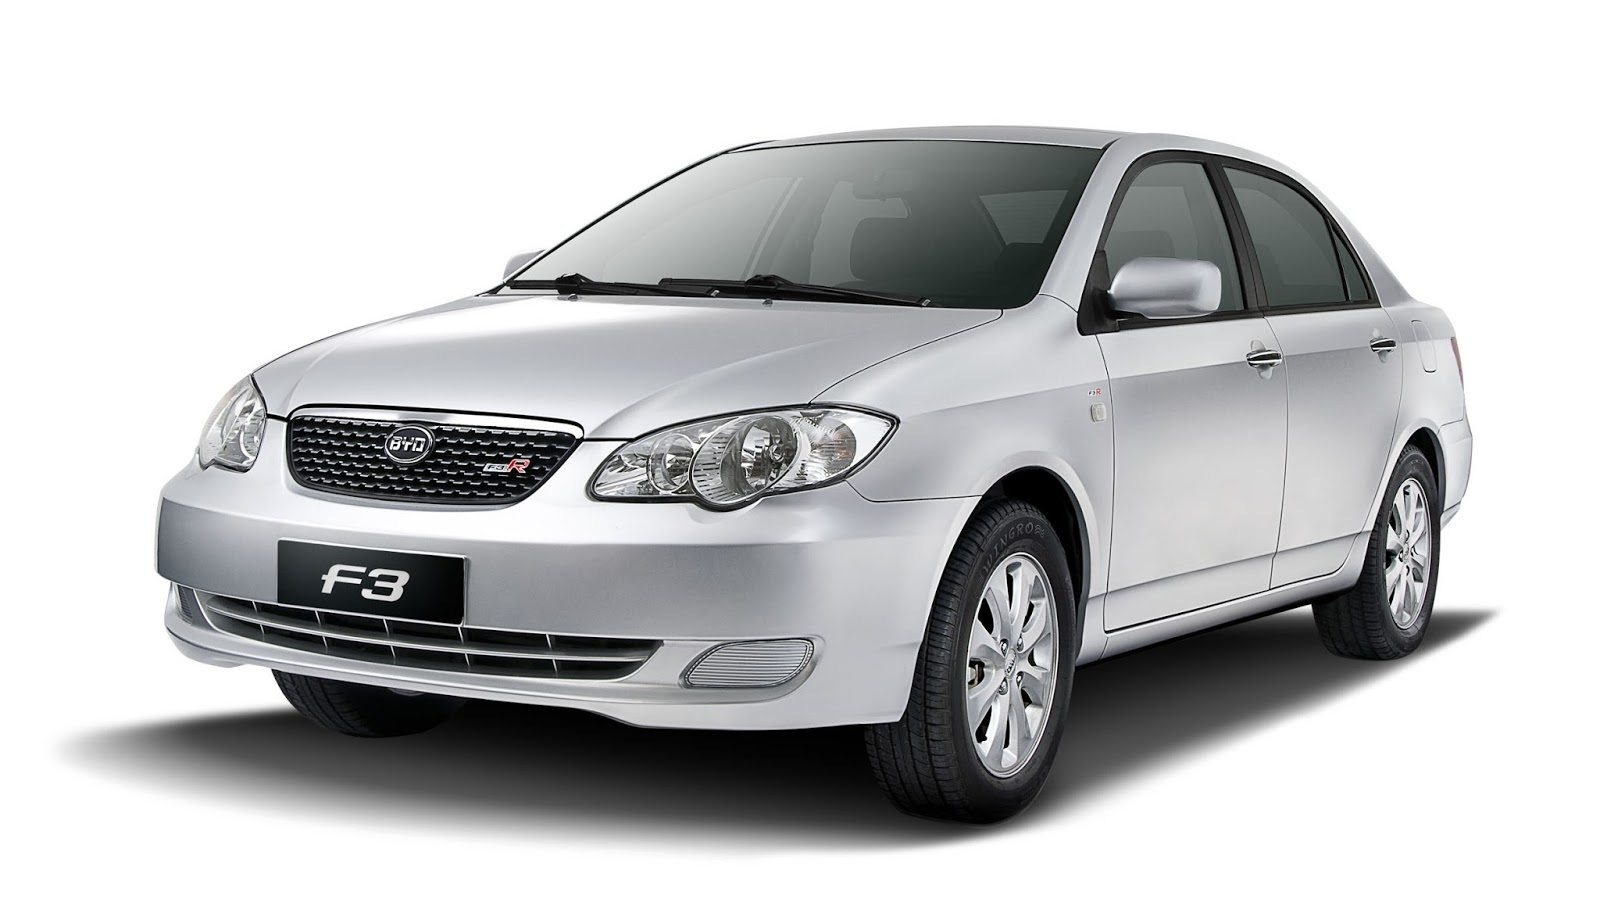 2018 BYD F3 GLXI Car : 2018 BYD F3 Car Price, Engine, Full Technical Specifications, Review ...